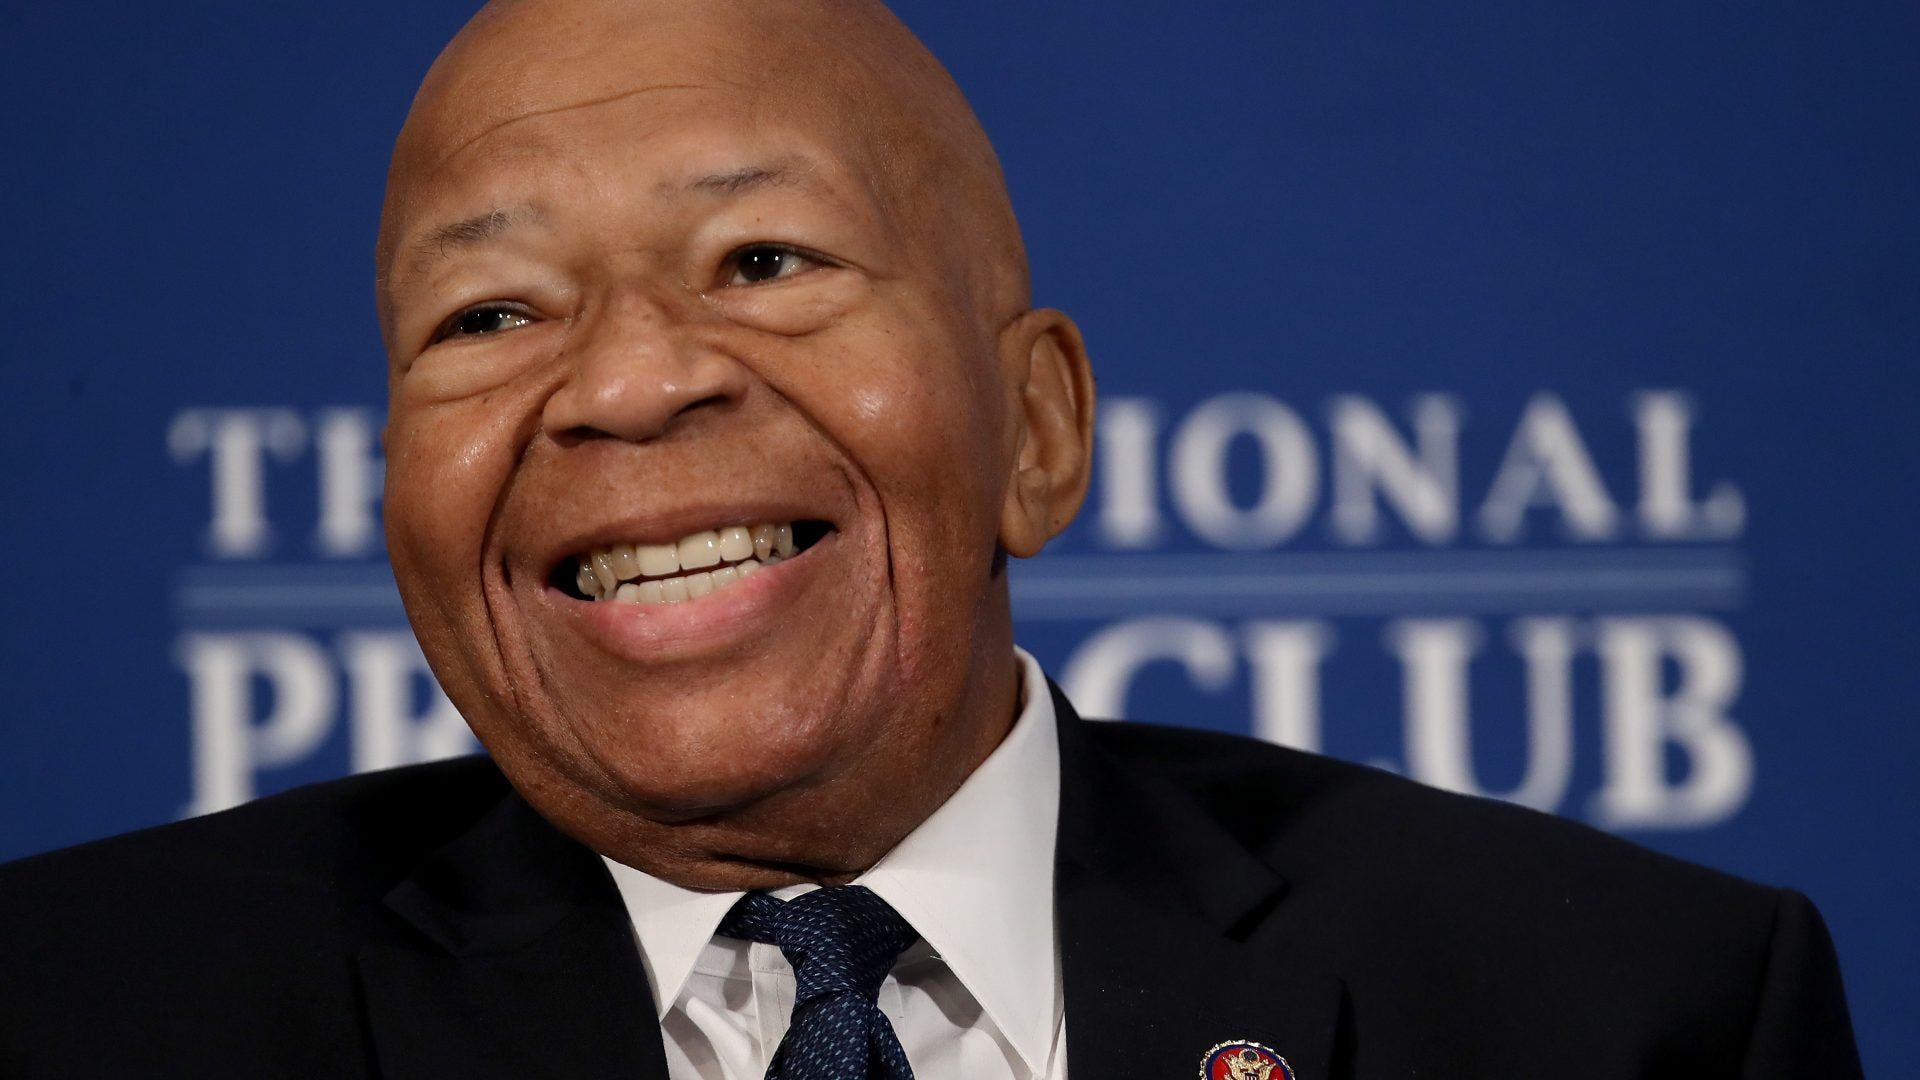 Rep. Elijah Cummings Is The First Black Lawmaker To Lie In State At U.S. Capitol